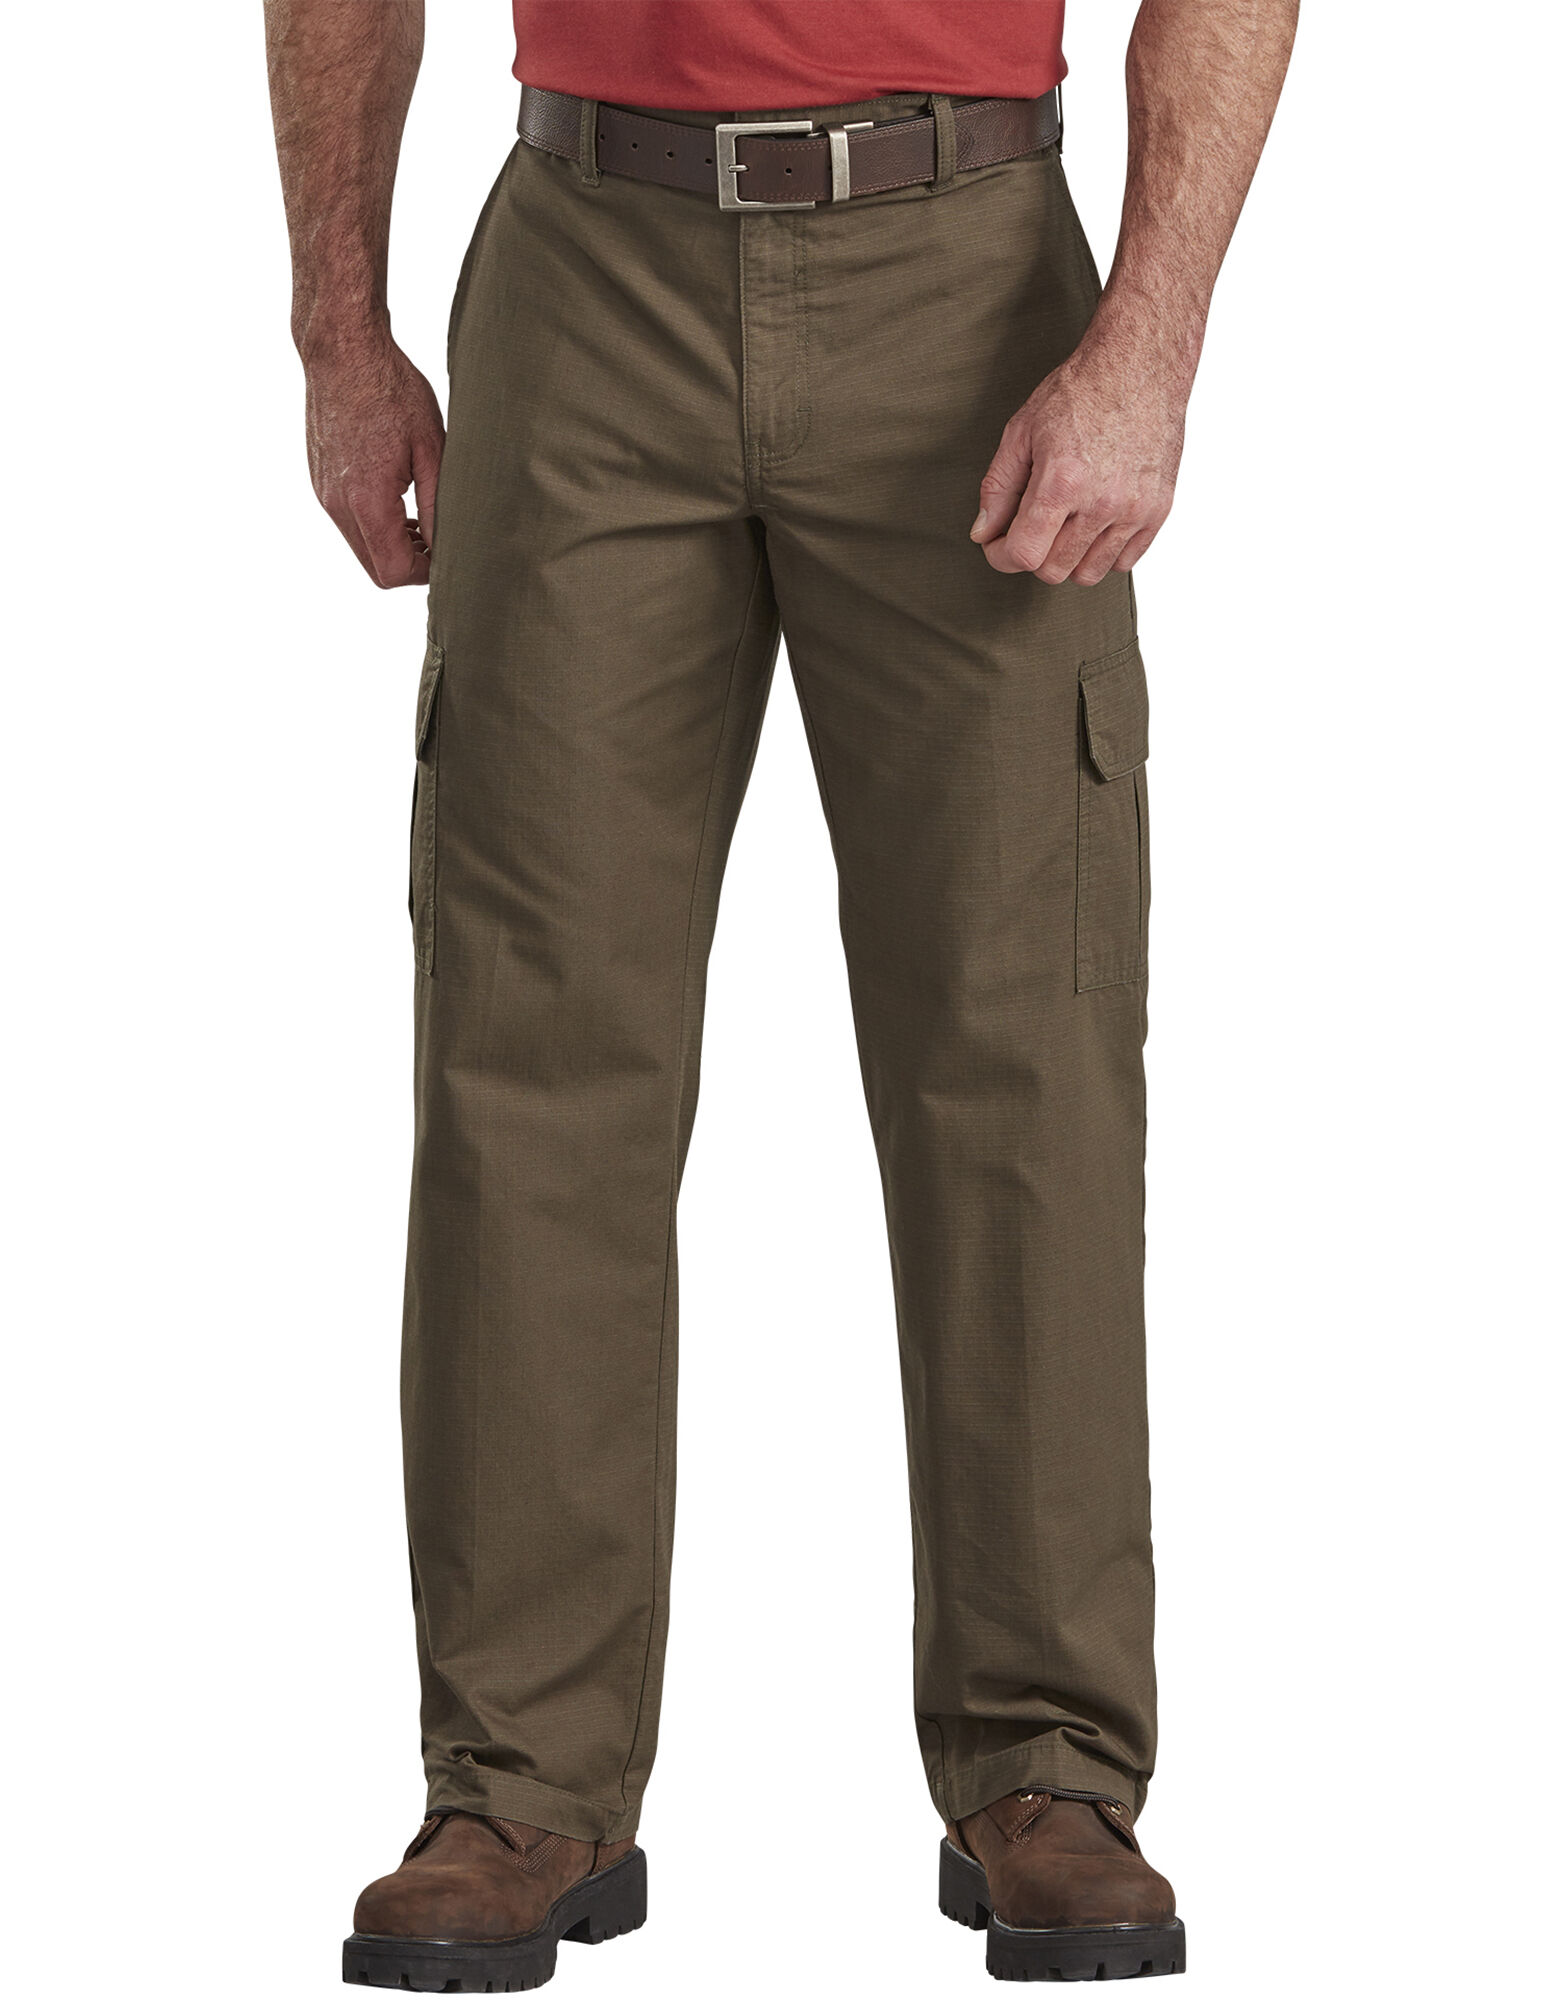 Relaxed Fit Dress Pants For Men